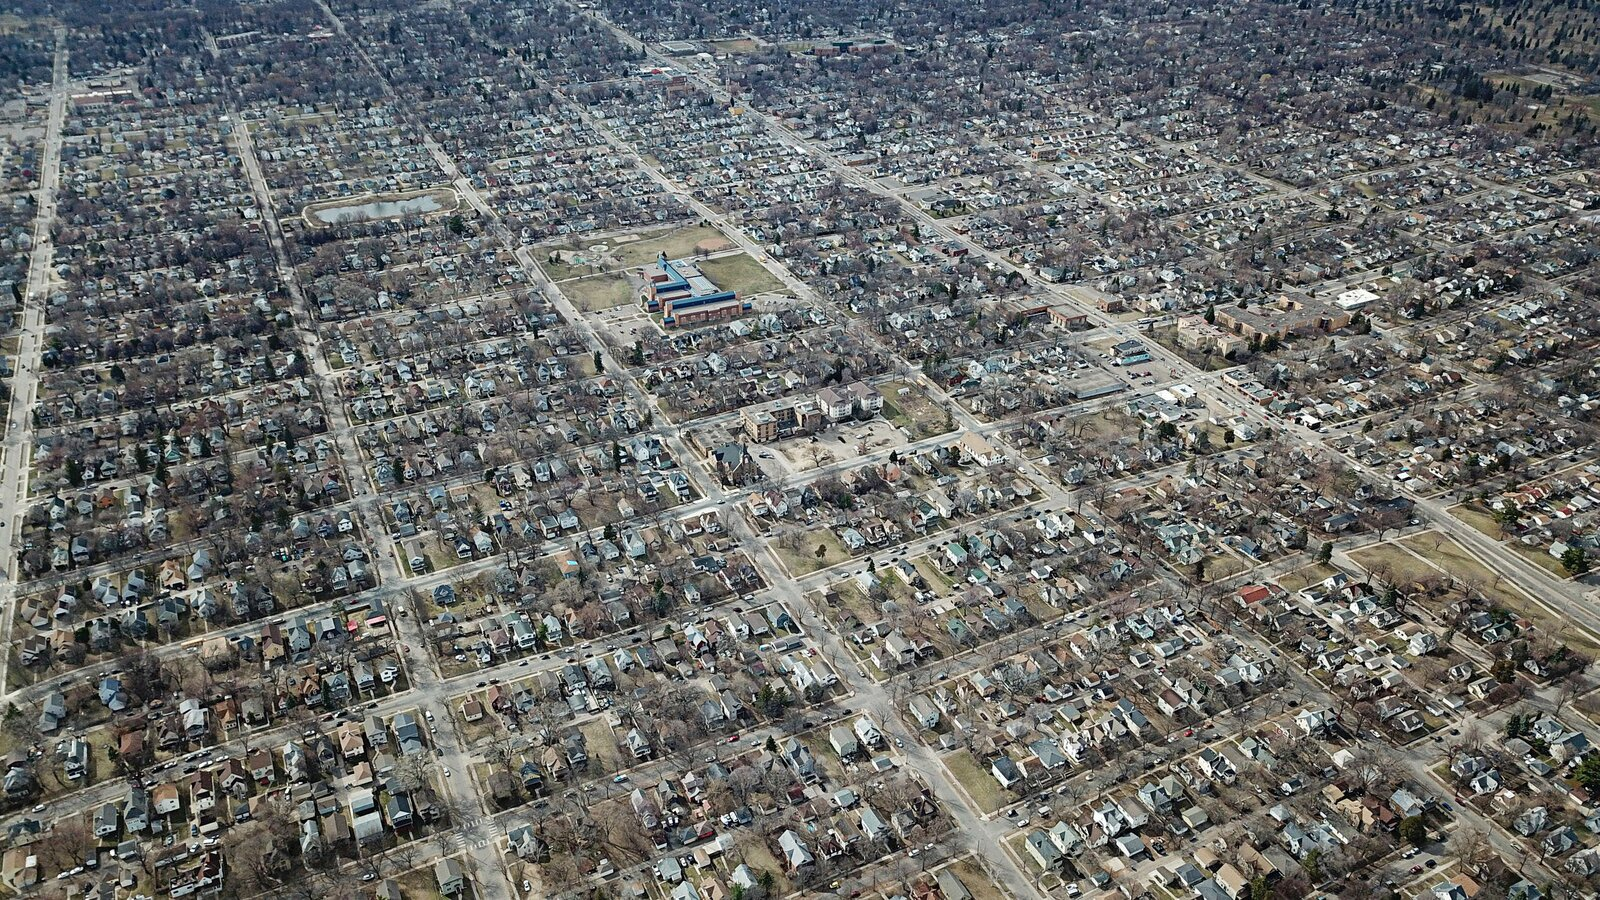 """A view of North Minneapolis, where, Ilhan Omar says, nearly half of all renters have experienced eviction in the last year. """"It's clear we have a housing crisis in the Twin Cities,"""" says the U.S. representative, whose district covers most of Minneapolis and some of its suburbs. """"Thousands are living in temporary shelters or transitional housing, most of them caught in a perpetual cycle of housing insecurity.""""  Photo 2 of 2 in Affording America: Representative Ilhan Omar Wants Homes for All"""